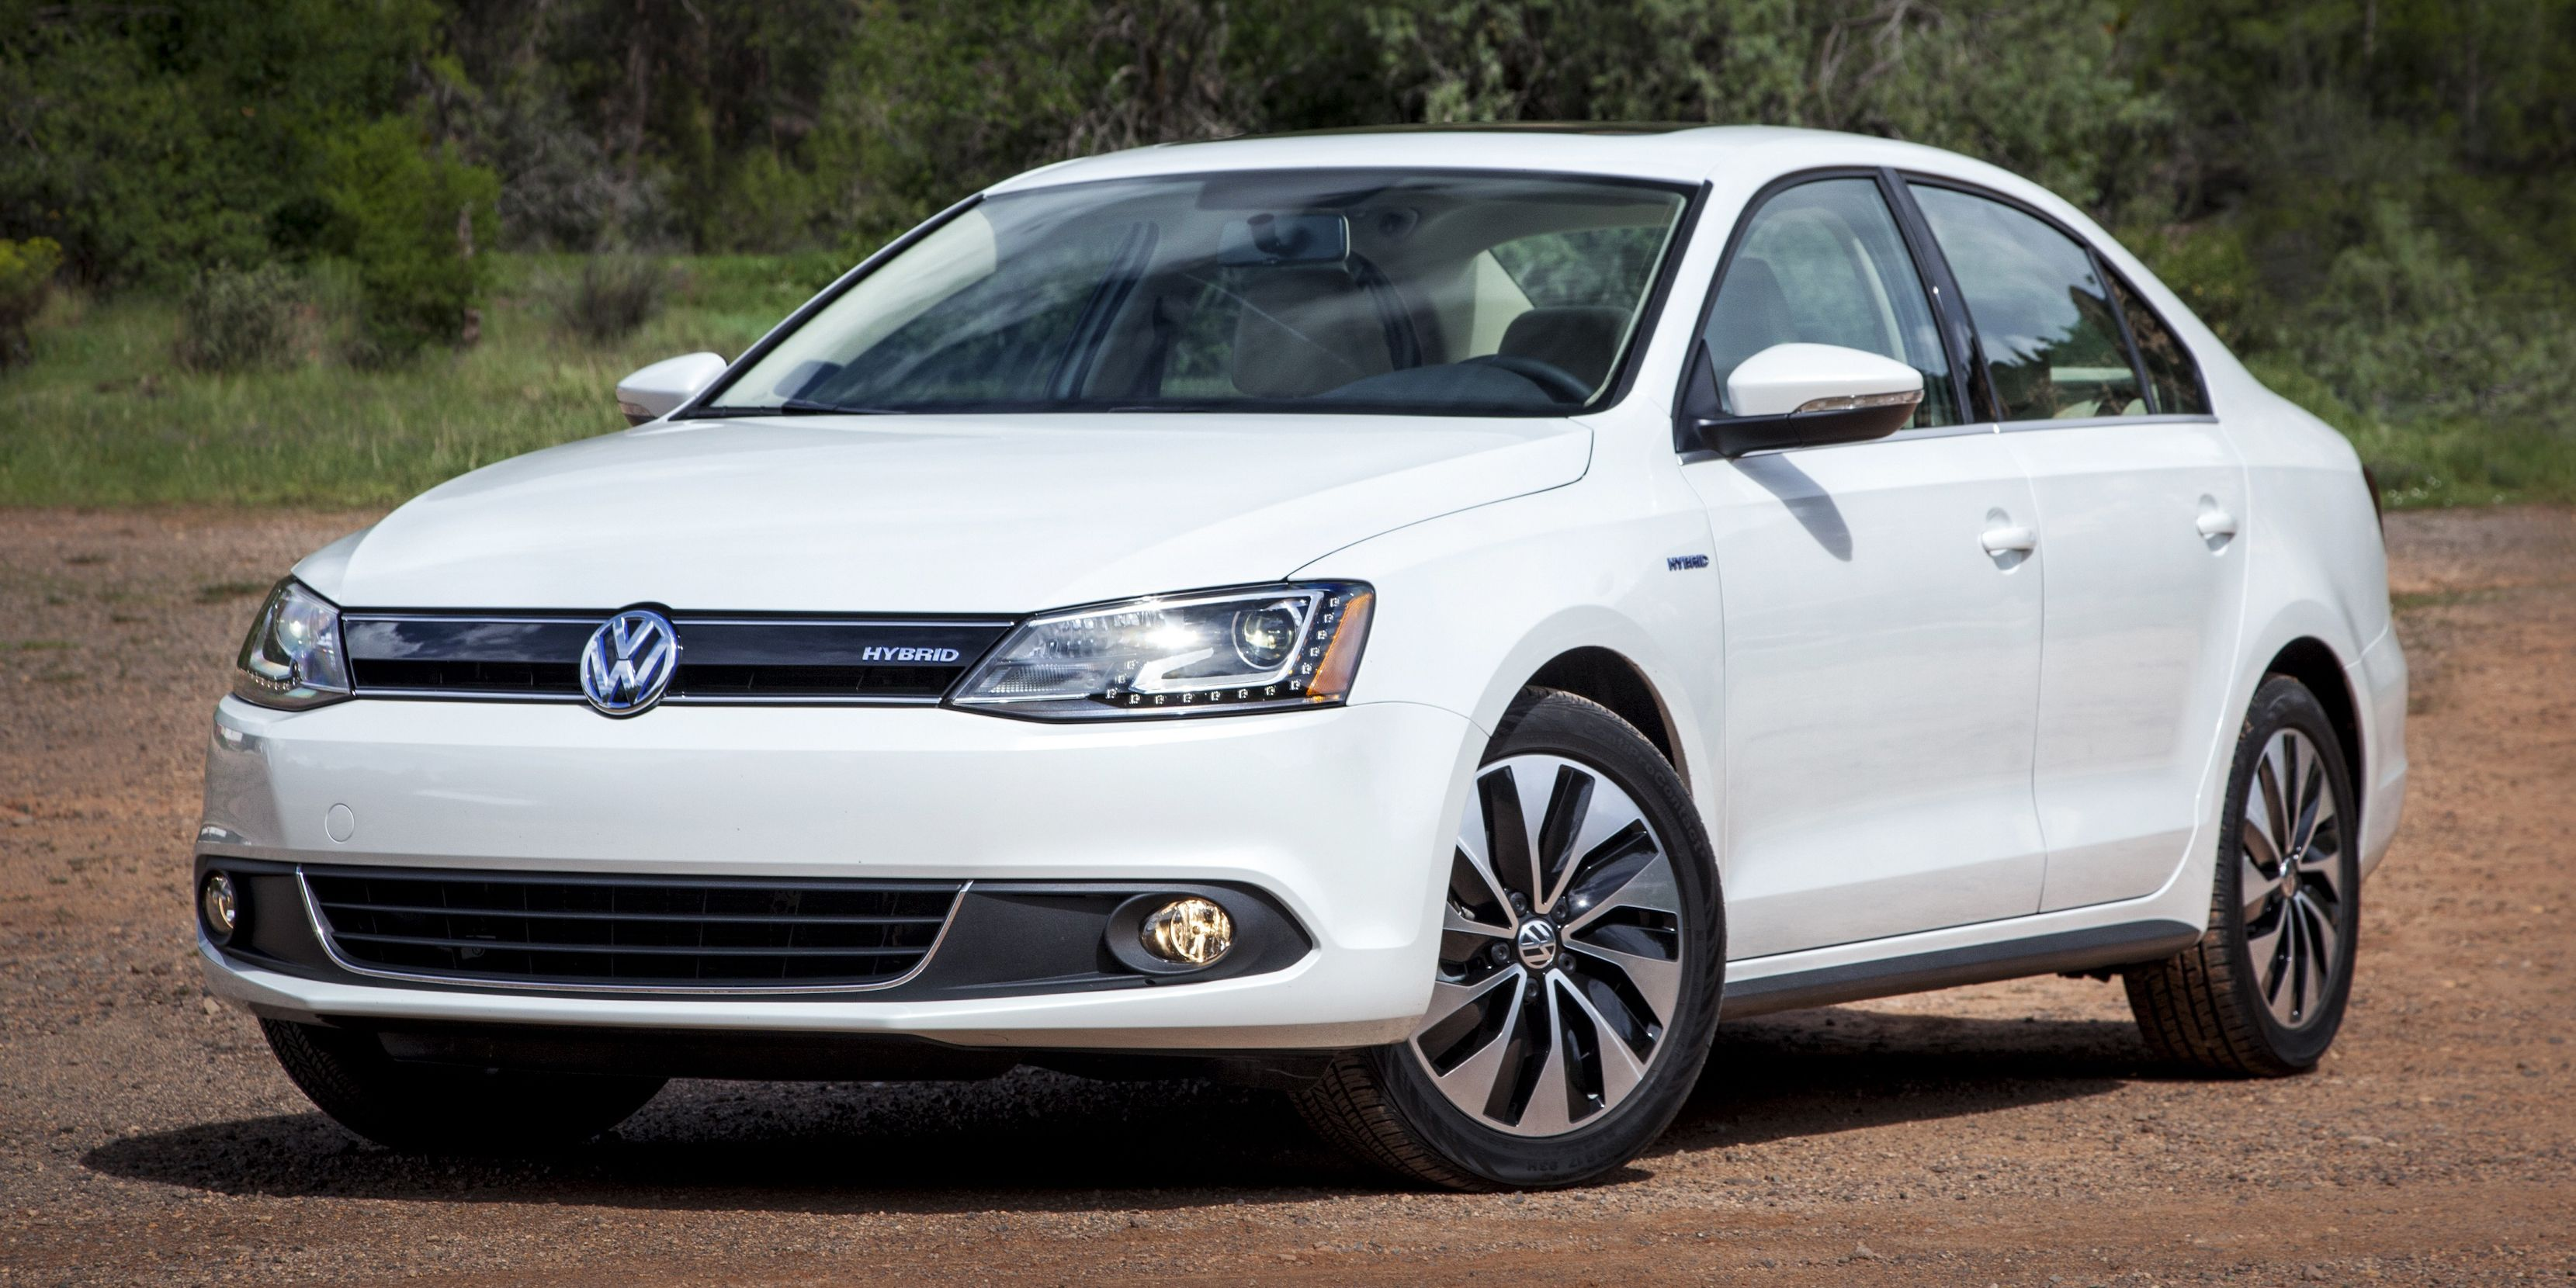 Image result for 2015 Jetta Hybrid